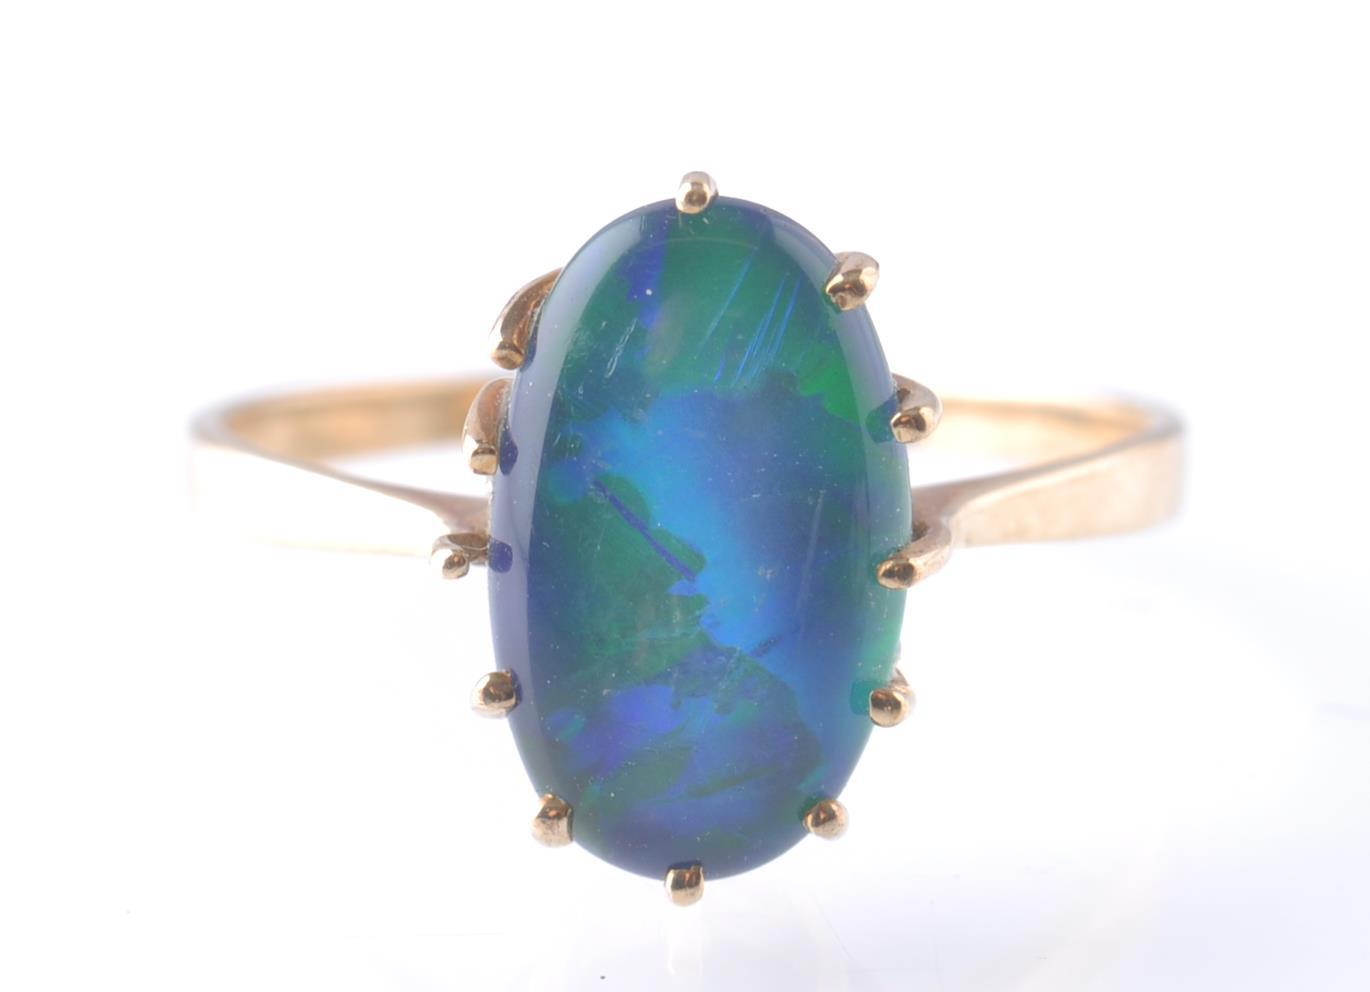 9CT / 375 GOLD AND BLACK OPAL RING